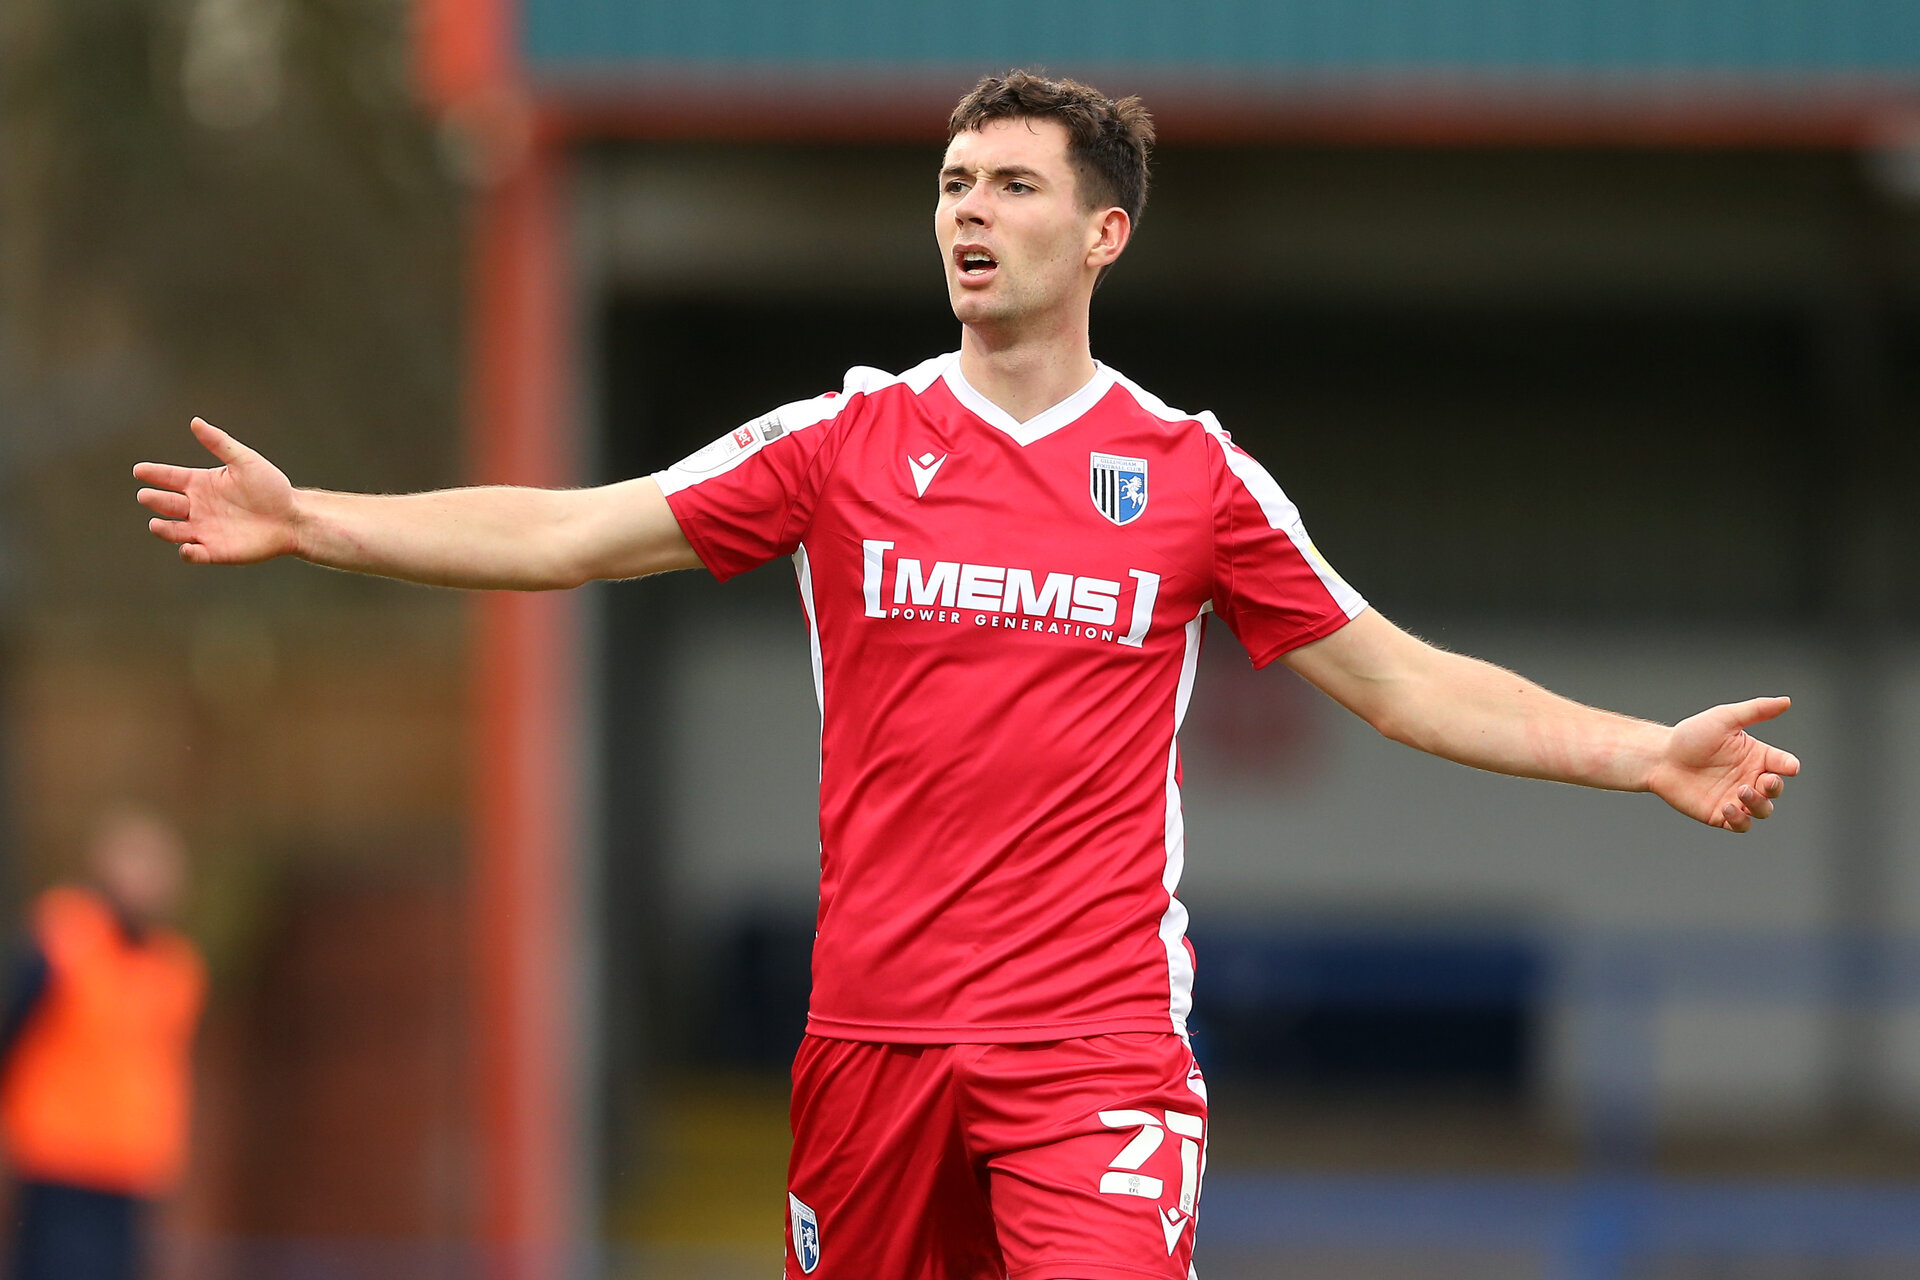 ROCHDALE, ENGLAND - DECEMBER 19: Tom O'Connor of Gillingham reacts during the Sky Bet League One match between Rochdale and Gillingham at Crown Oil Arena on December 19, 2020 in Rochdale, England. (Photo by Charlotte Tattersall/Getty Images)